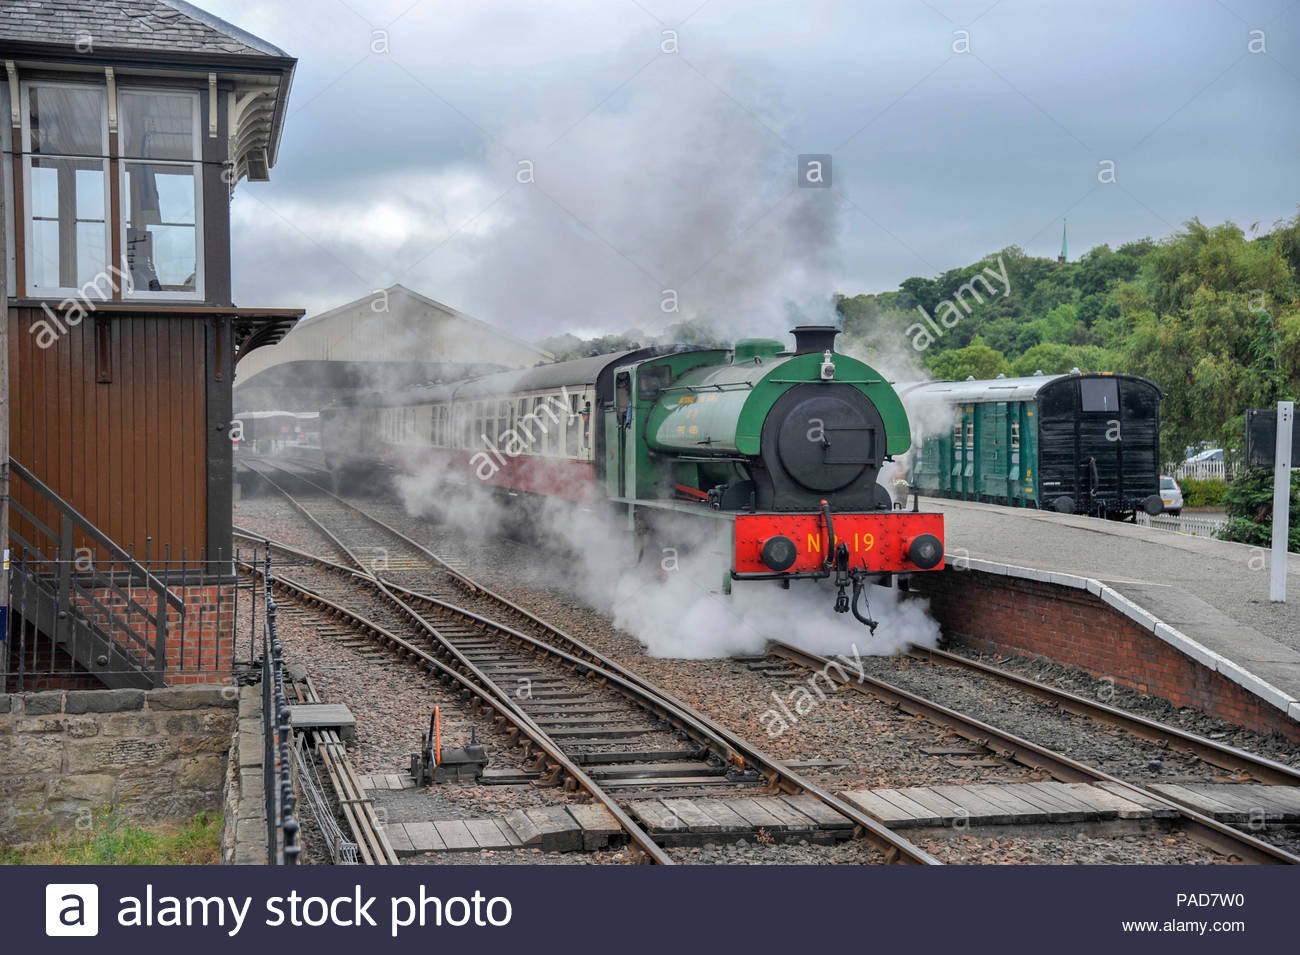 Bo'ness, UK. 22nd July, 2018. First train of the day departs Bo'ness station for Manuel. With local schools closed for the summer holidays rail tours along the River Forth are a popular day out for families. Photo: Roger Gaisford/Alamy Live News - Stock Image